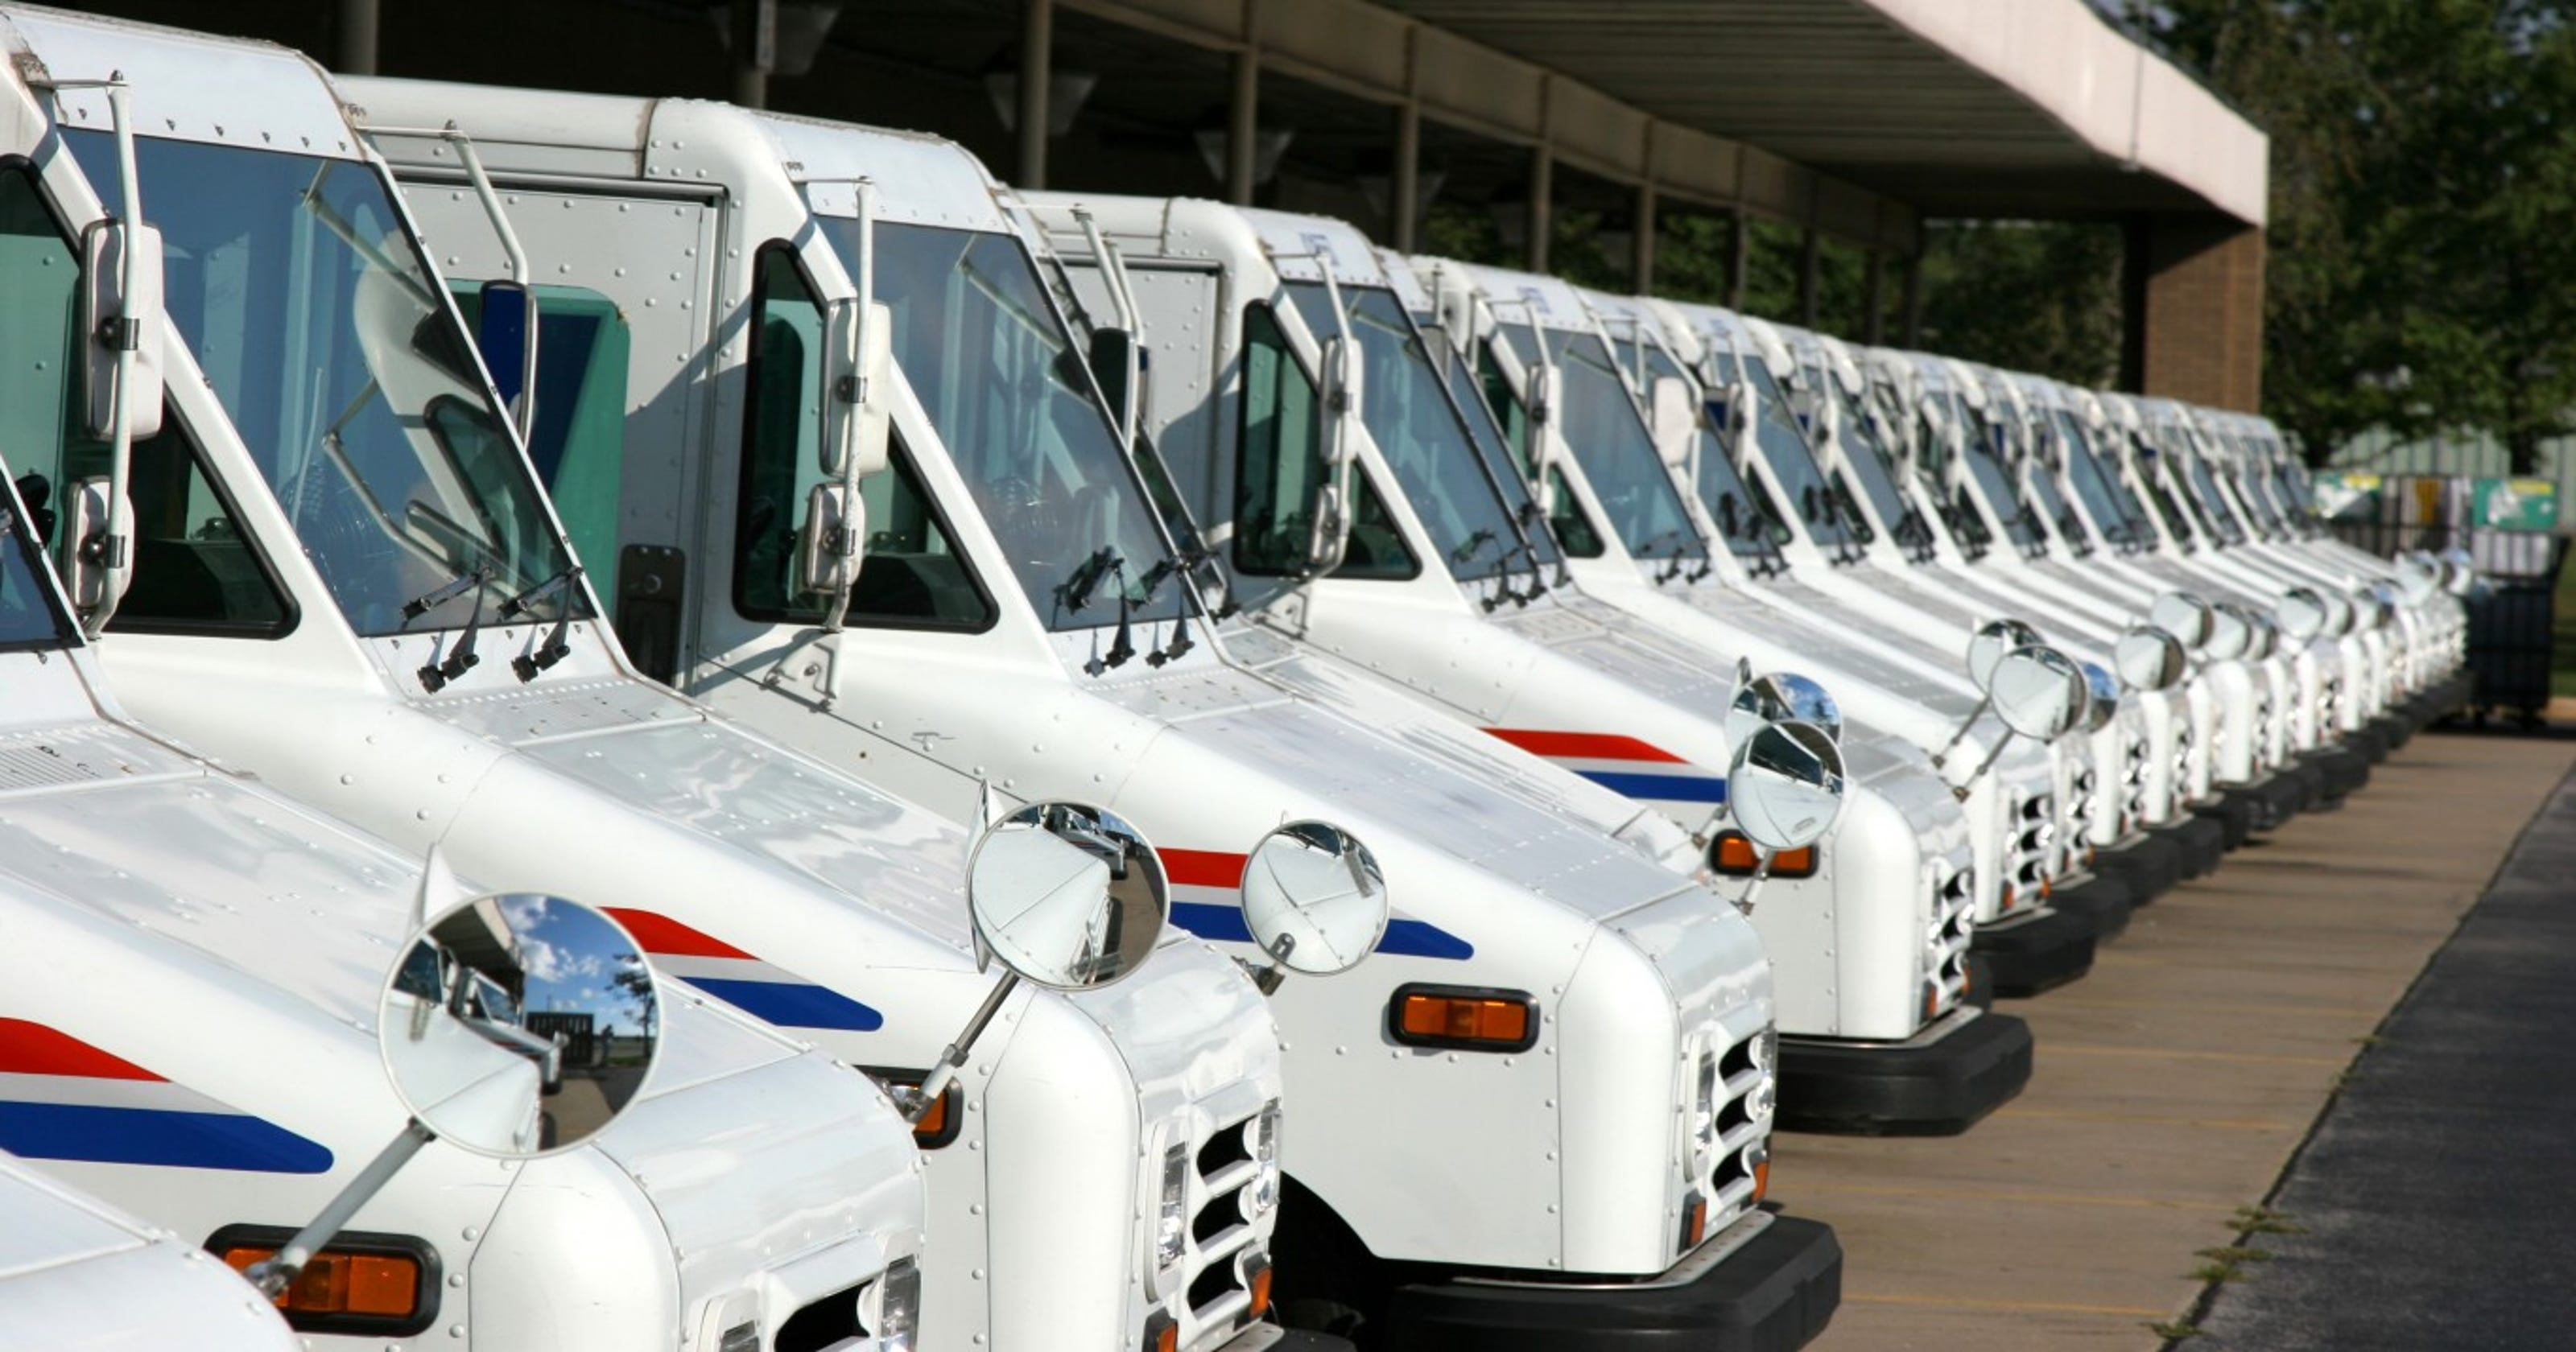 Heat safety: USPS workers in Arizona want air conditioning